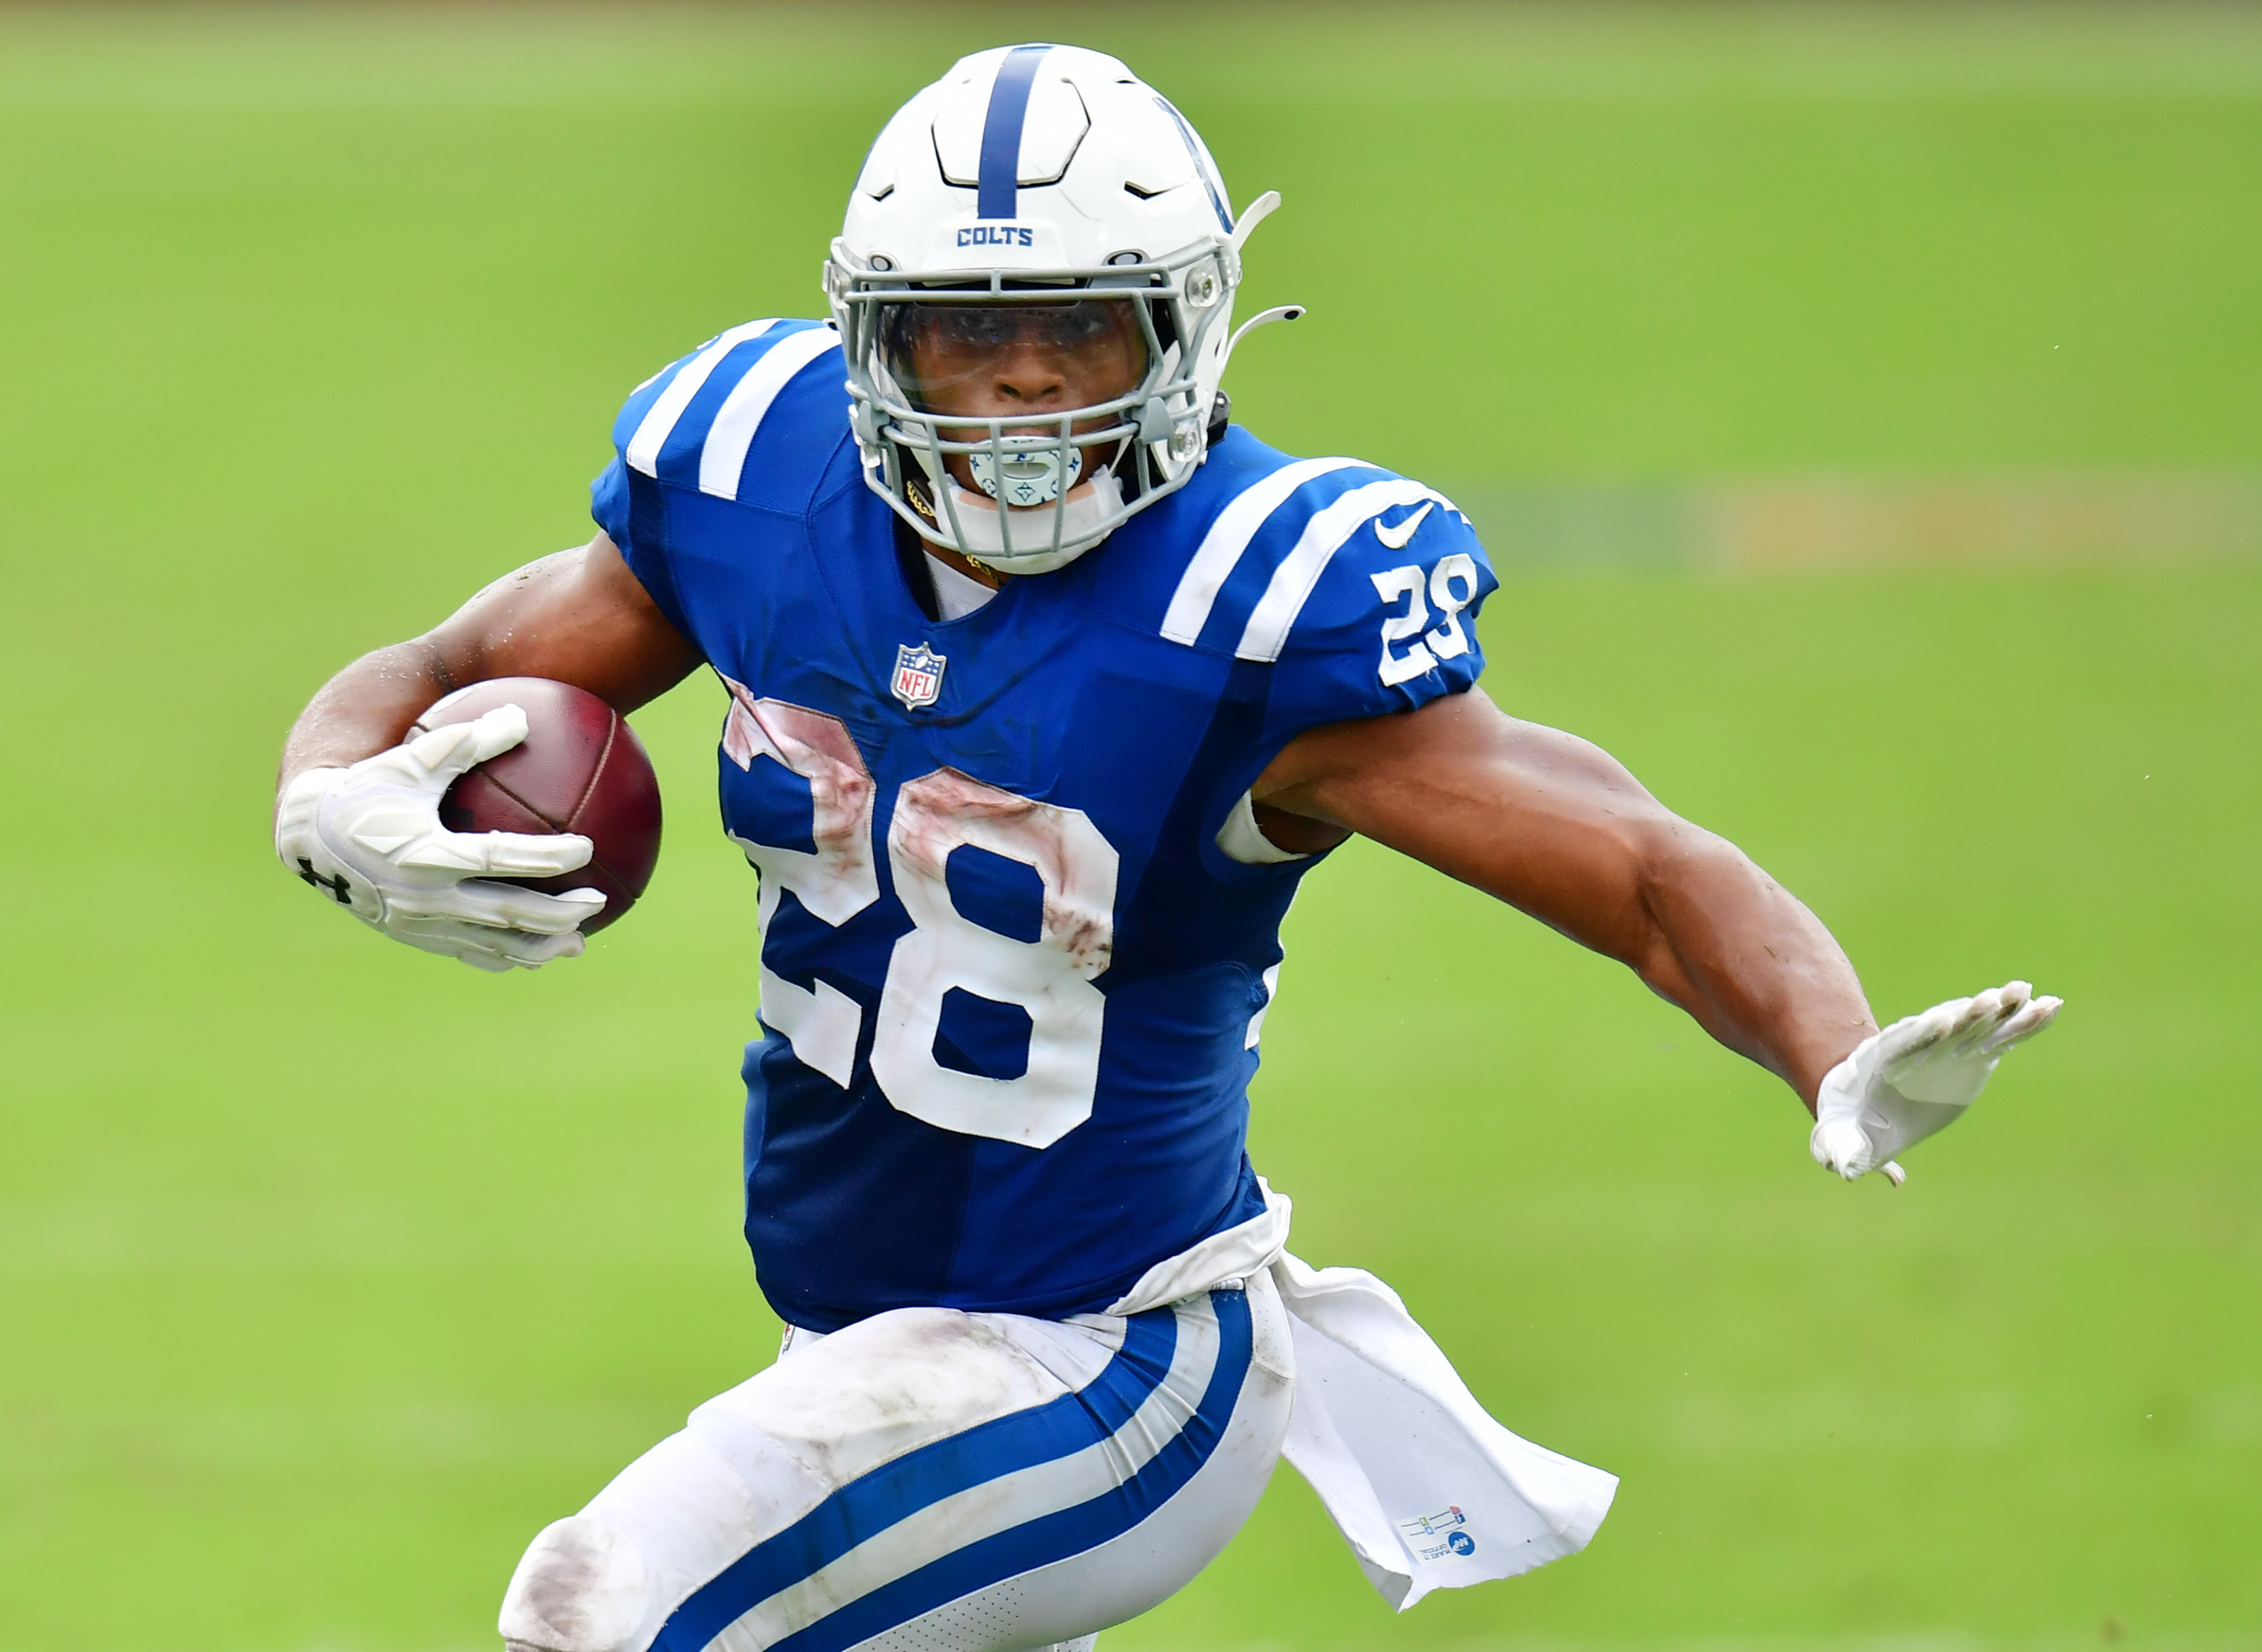 Colts: There's still reason not to be fully sold on Jonathan Taylor